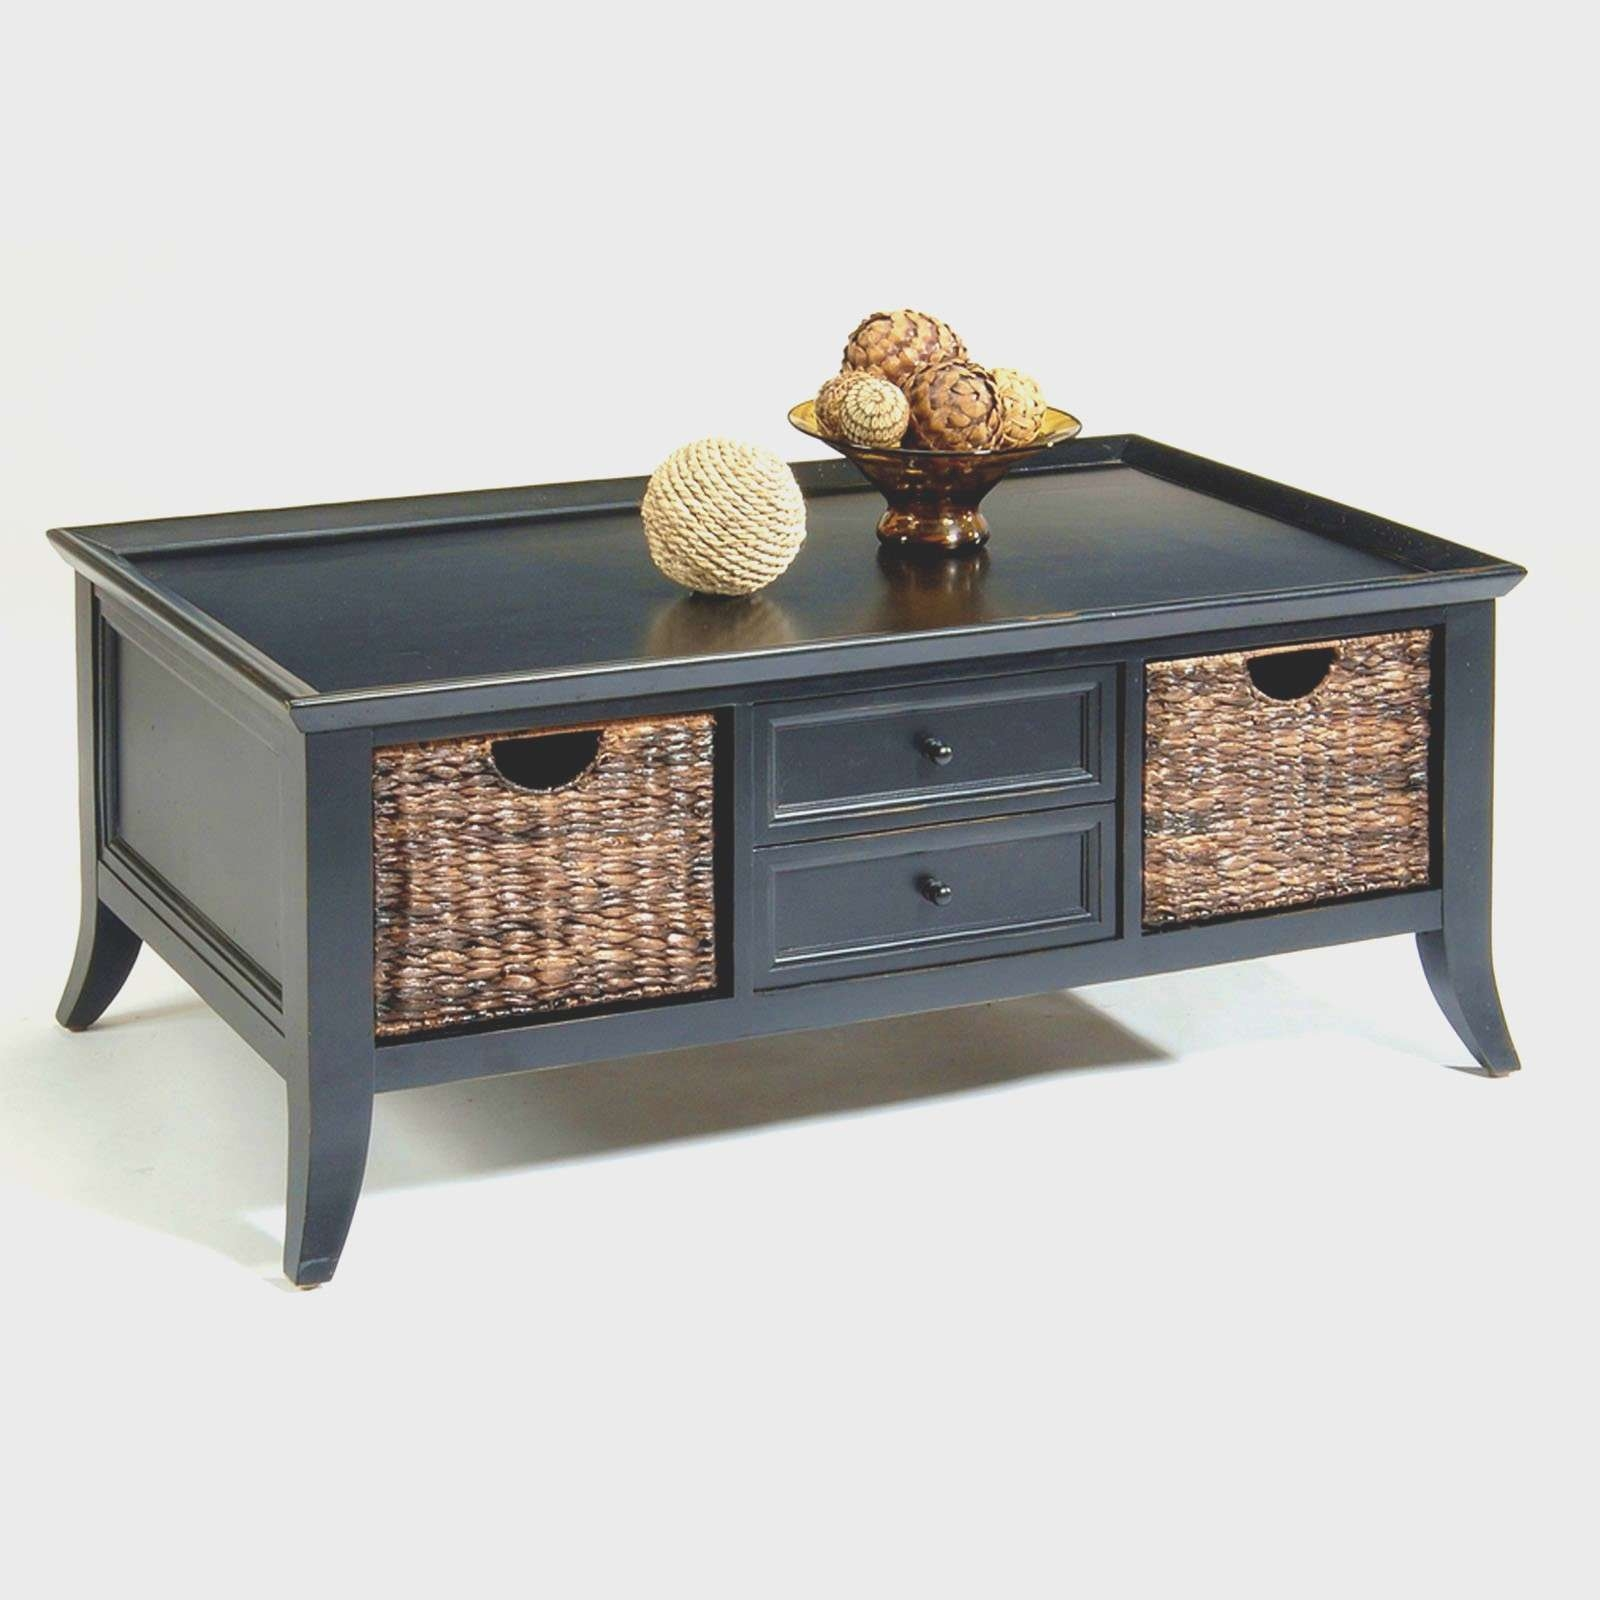 Sofa Table With Storage Baskets Full Size Sofa Table With Baskets